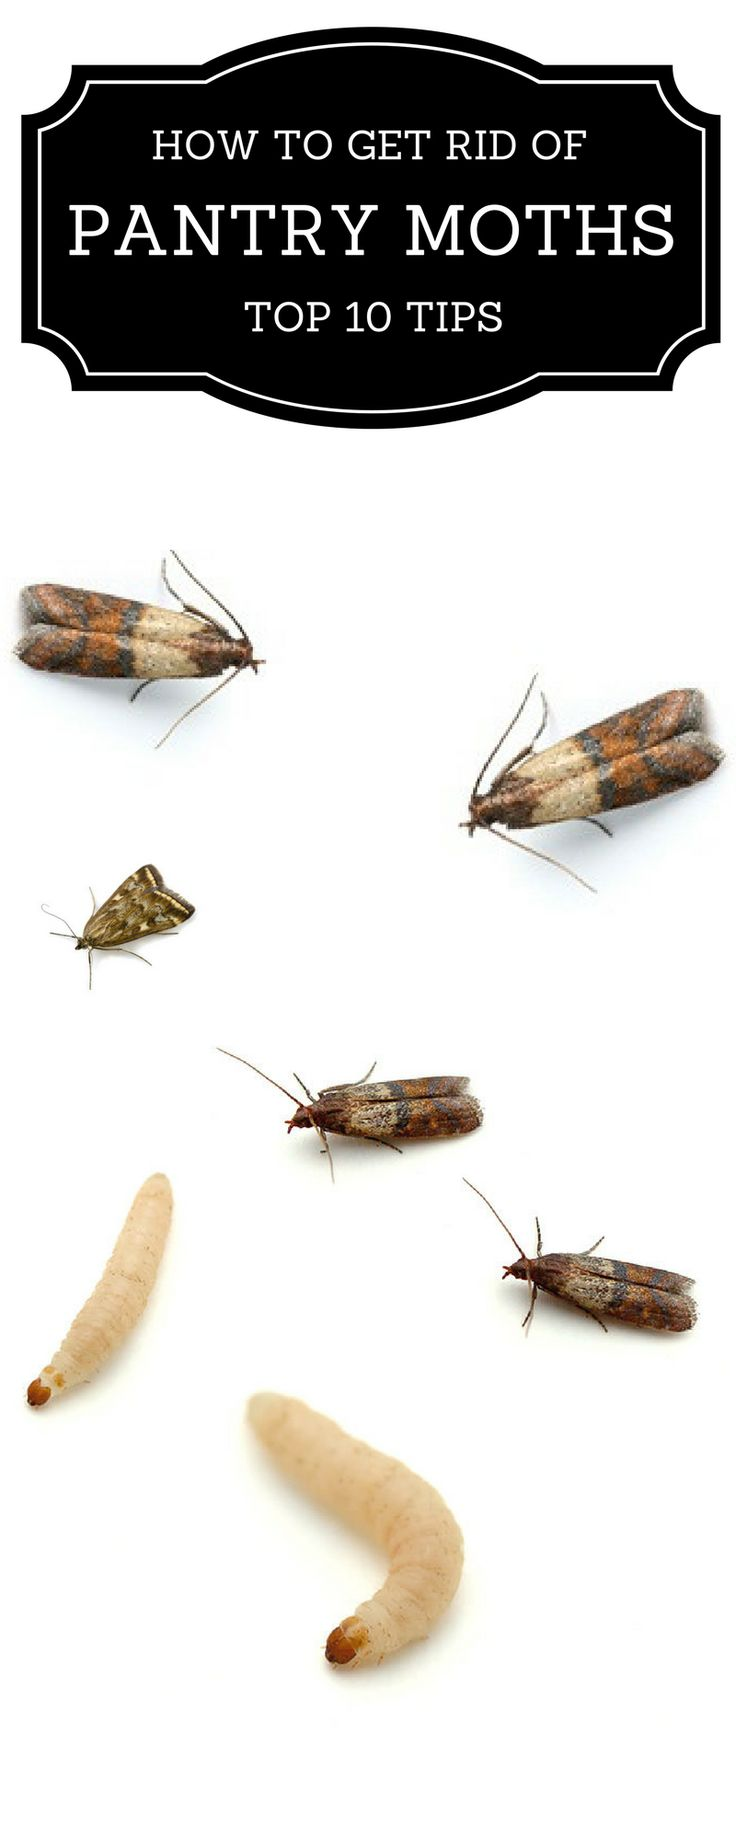 Brown flying bugs in house how do i get rid of those moth like bugs in - Top 10 Tips On How To Get Rid Of Pantry Moths